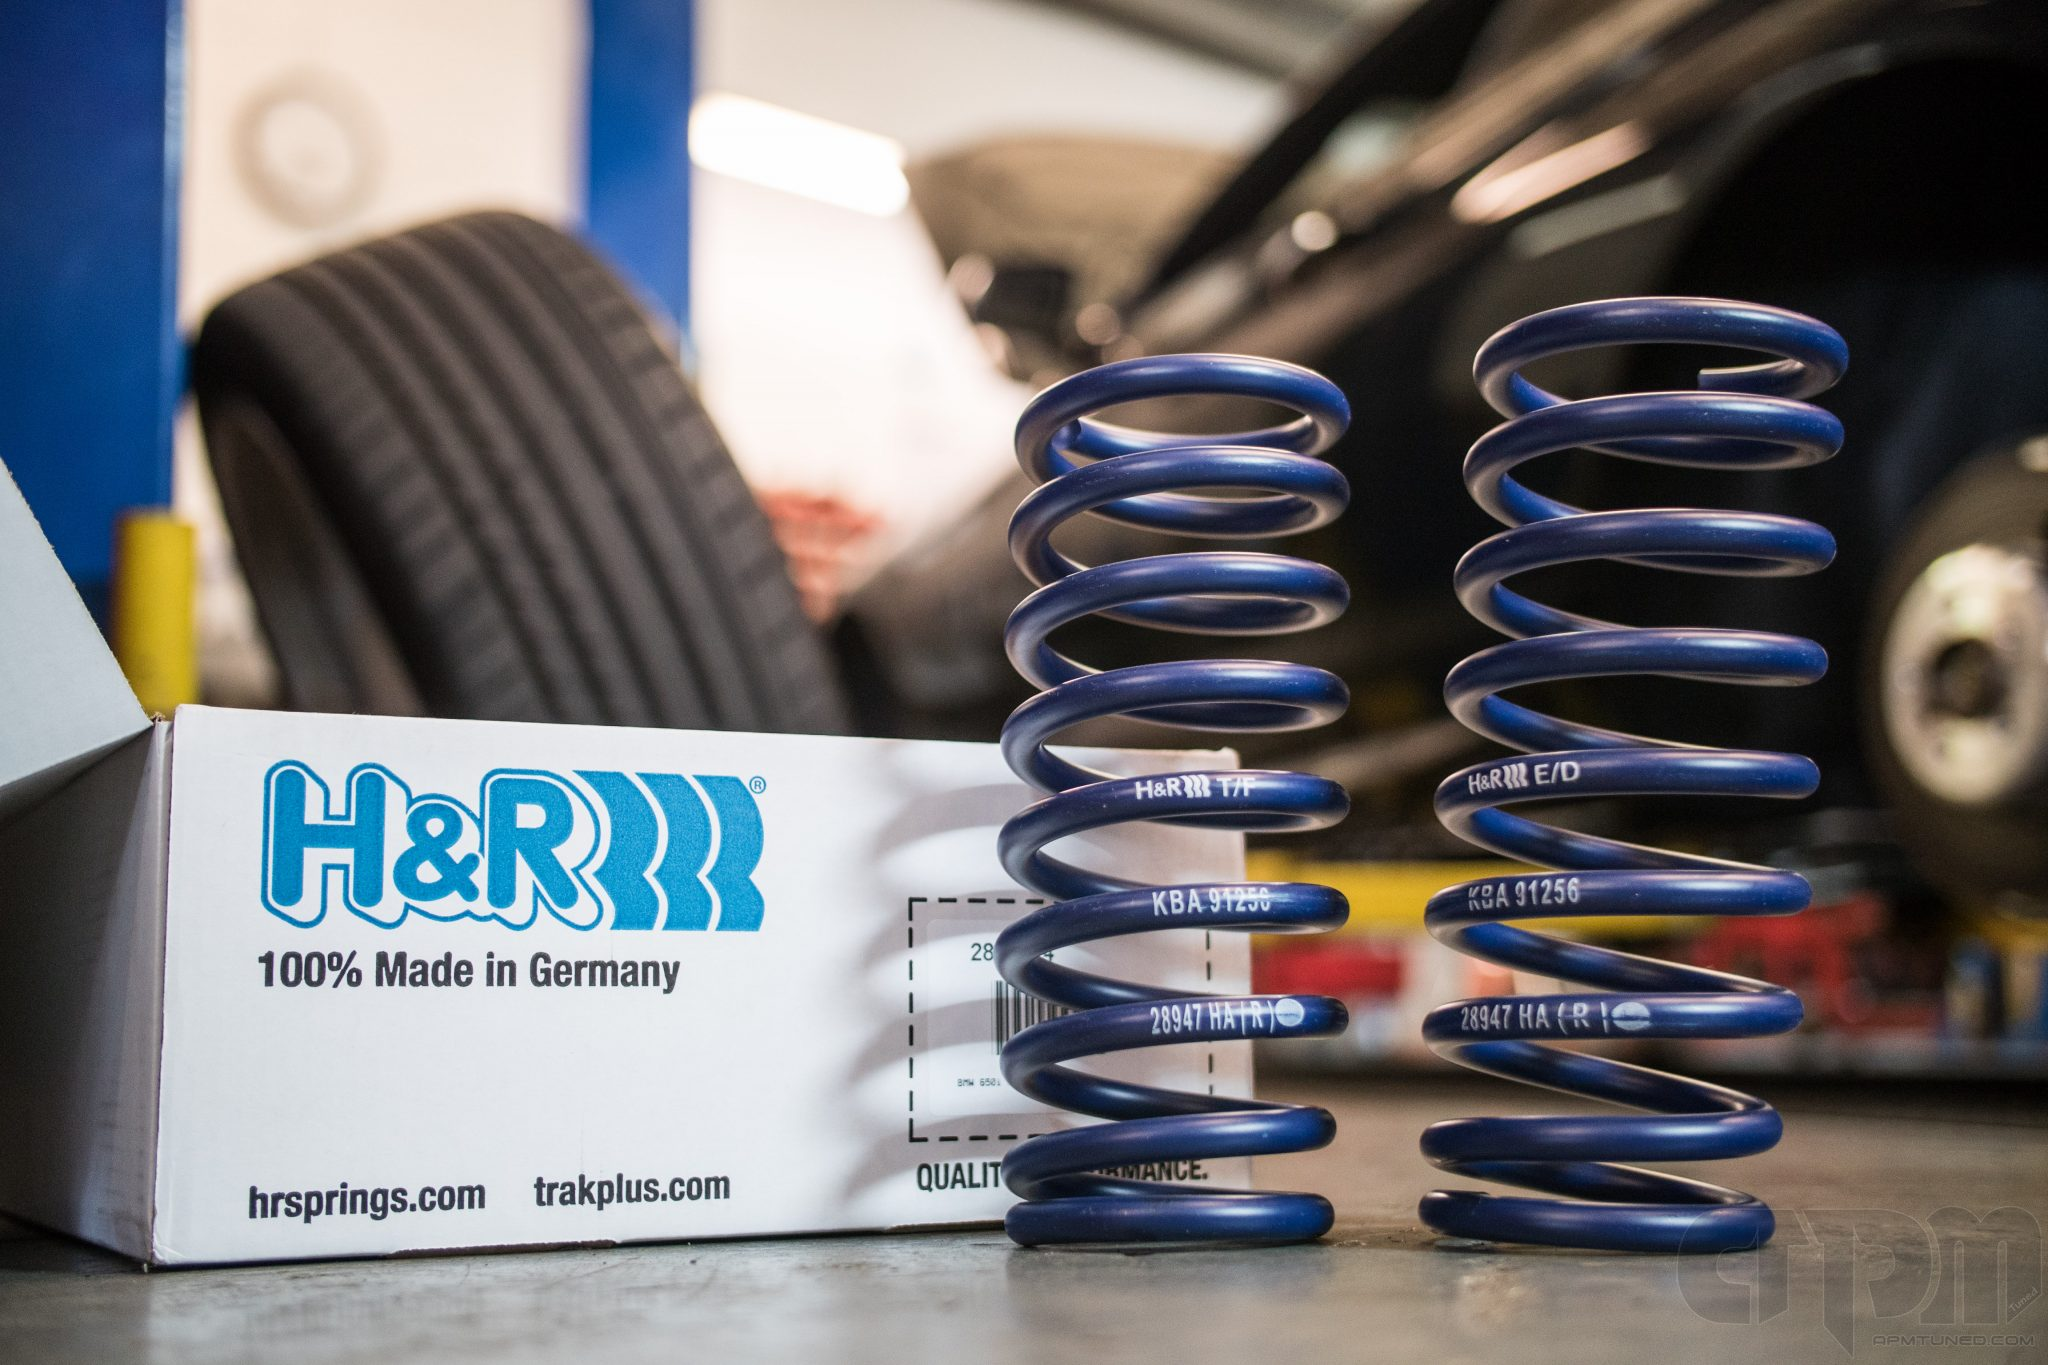 H&R Suspension springs getting ready to go on a BMW M series